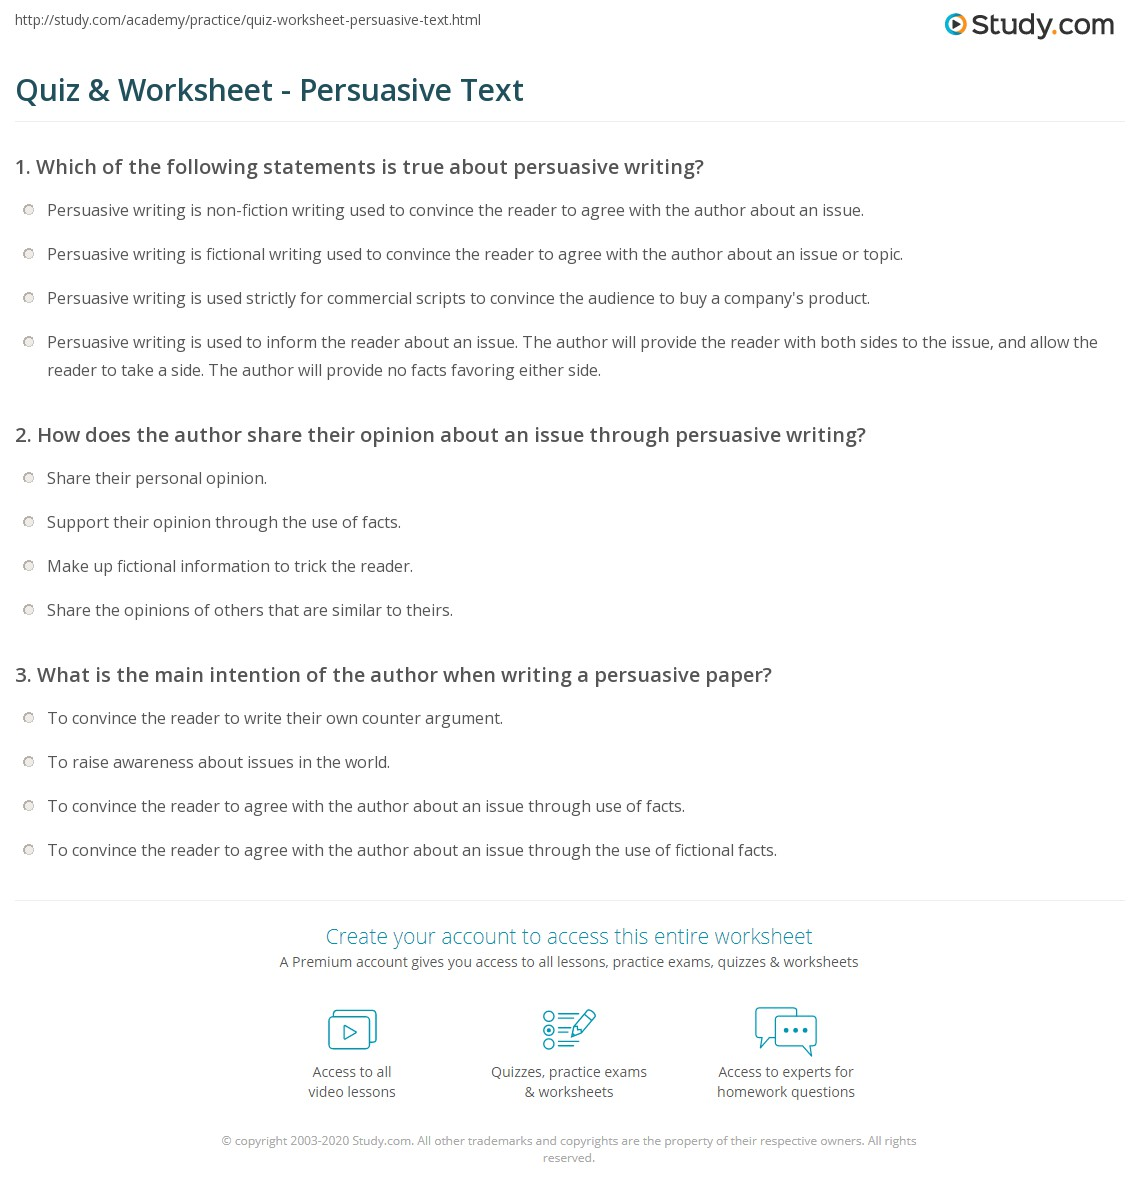 Worksheets Persuasive Techniques Worksheets persuasive techniques worksheet worksheets kristawiltbank free sharebrowse sharebrowse